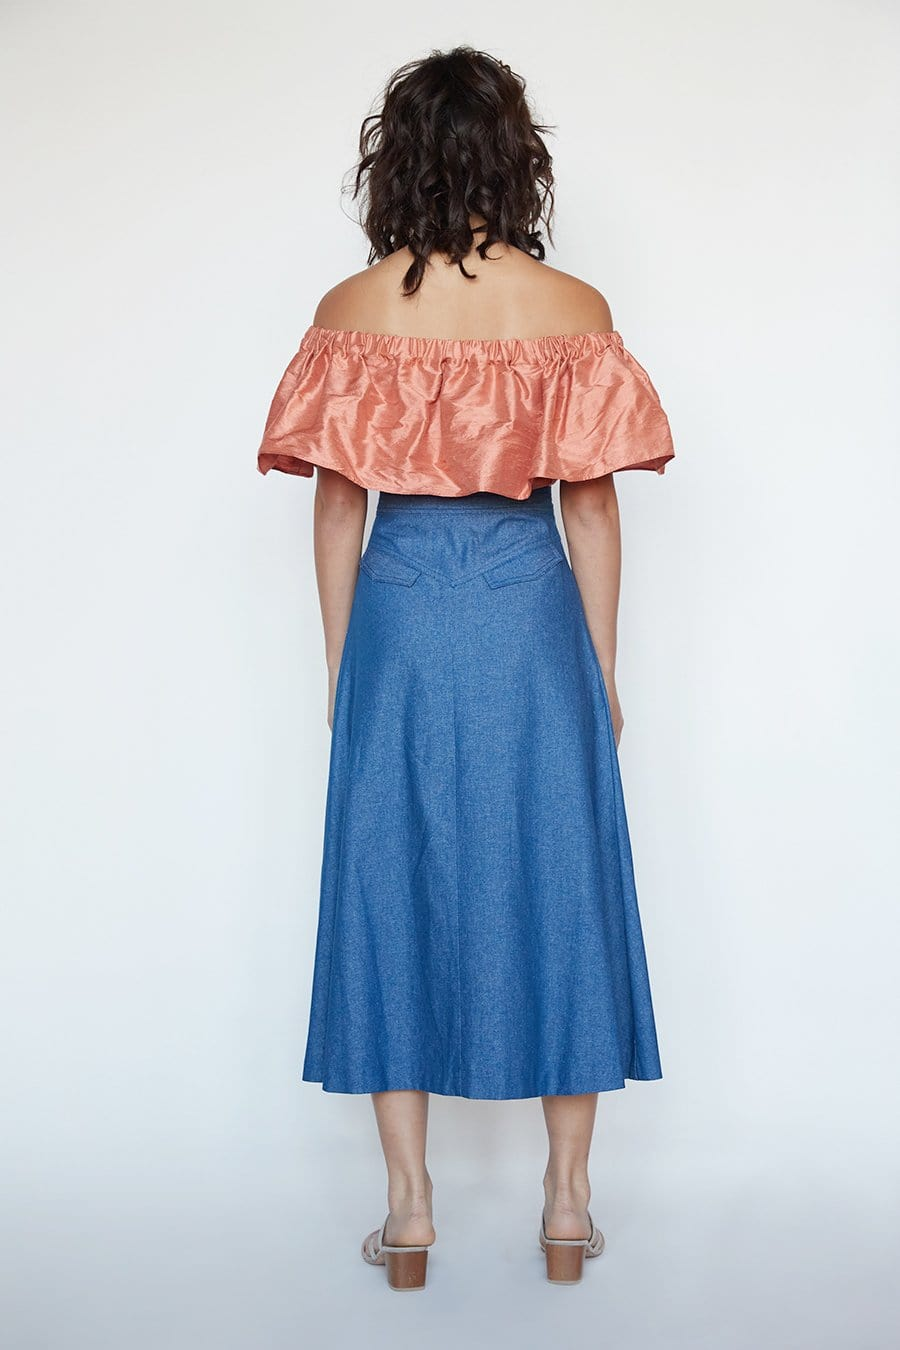 Jolene Skirt in Cotton Twill